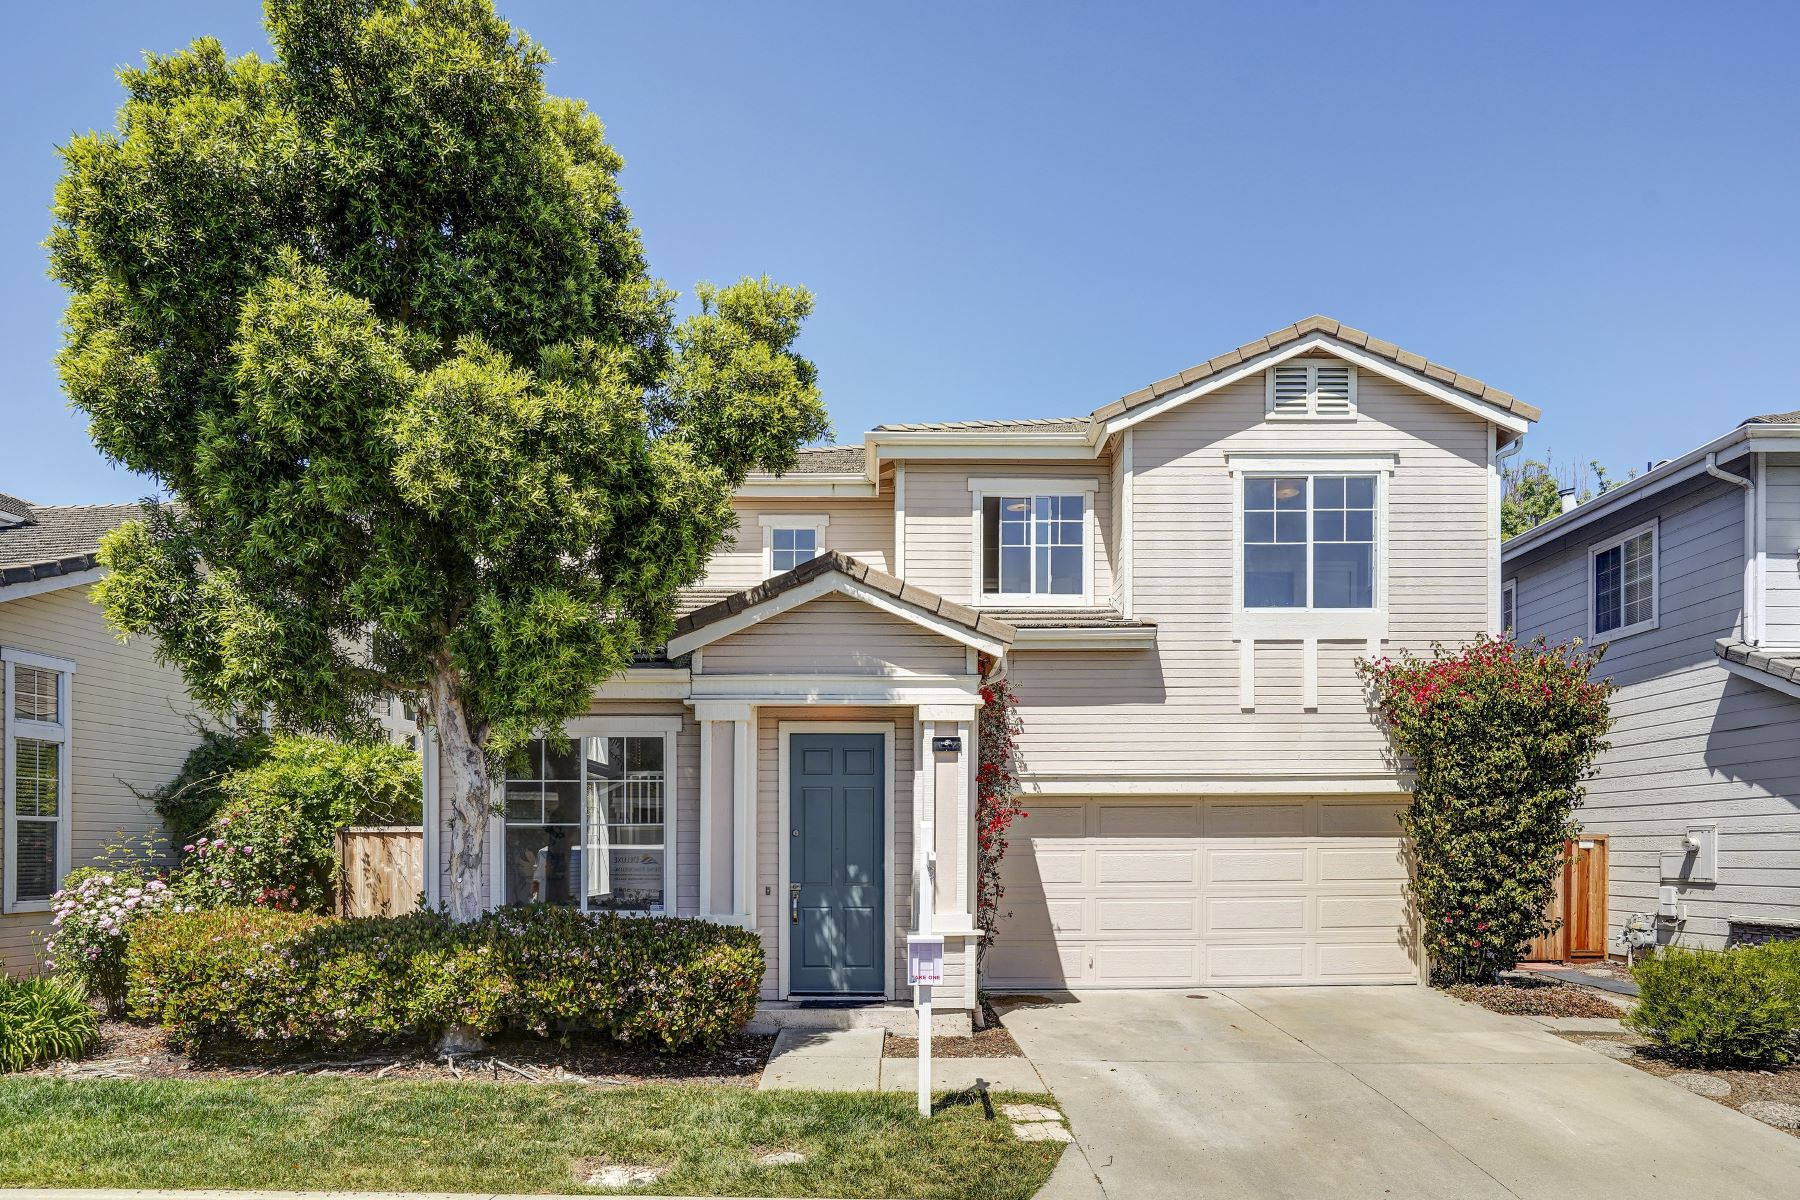 Single Family Home for Active at 538 Osprey Drive Redwood City, California 94065 United States